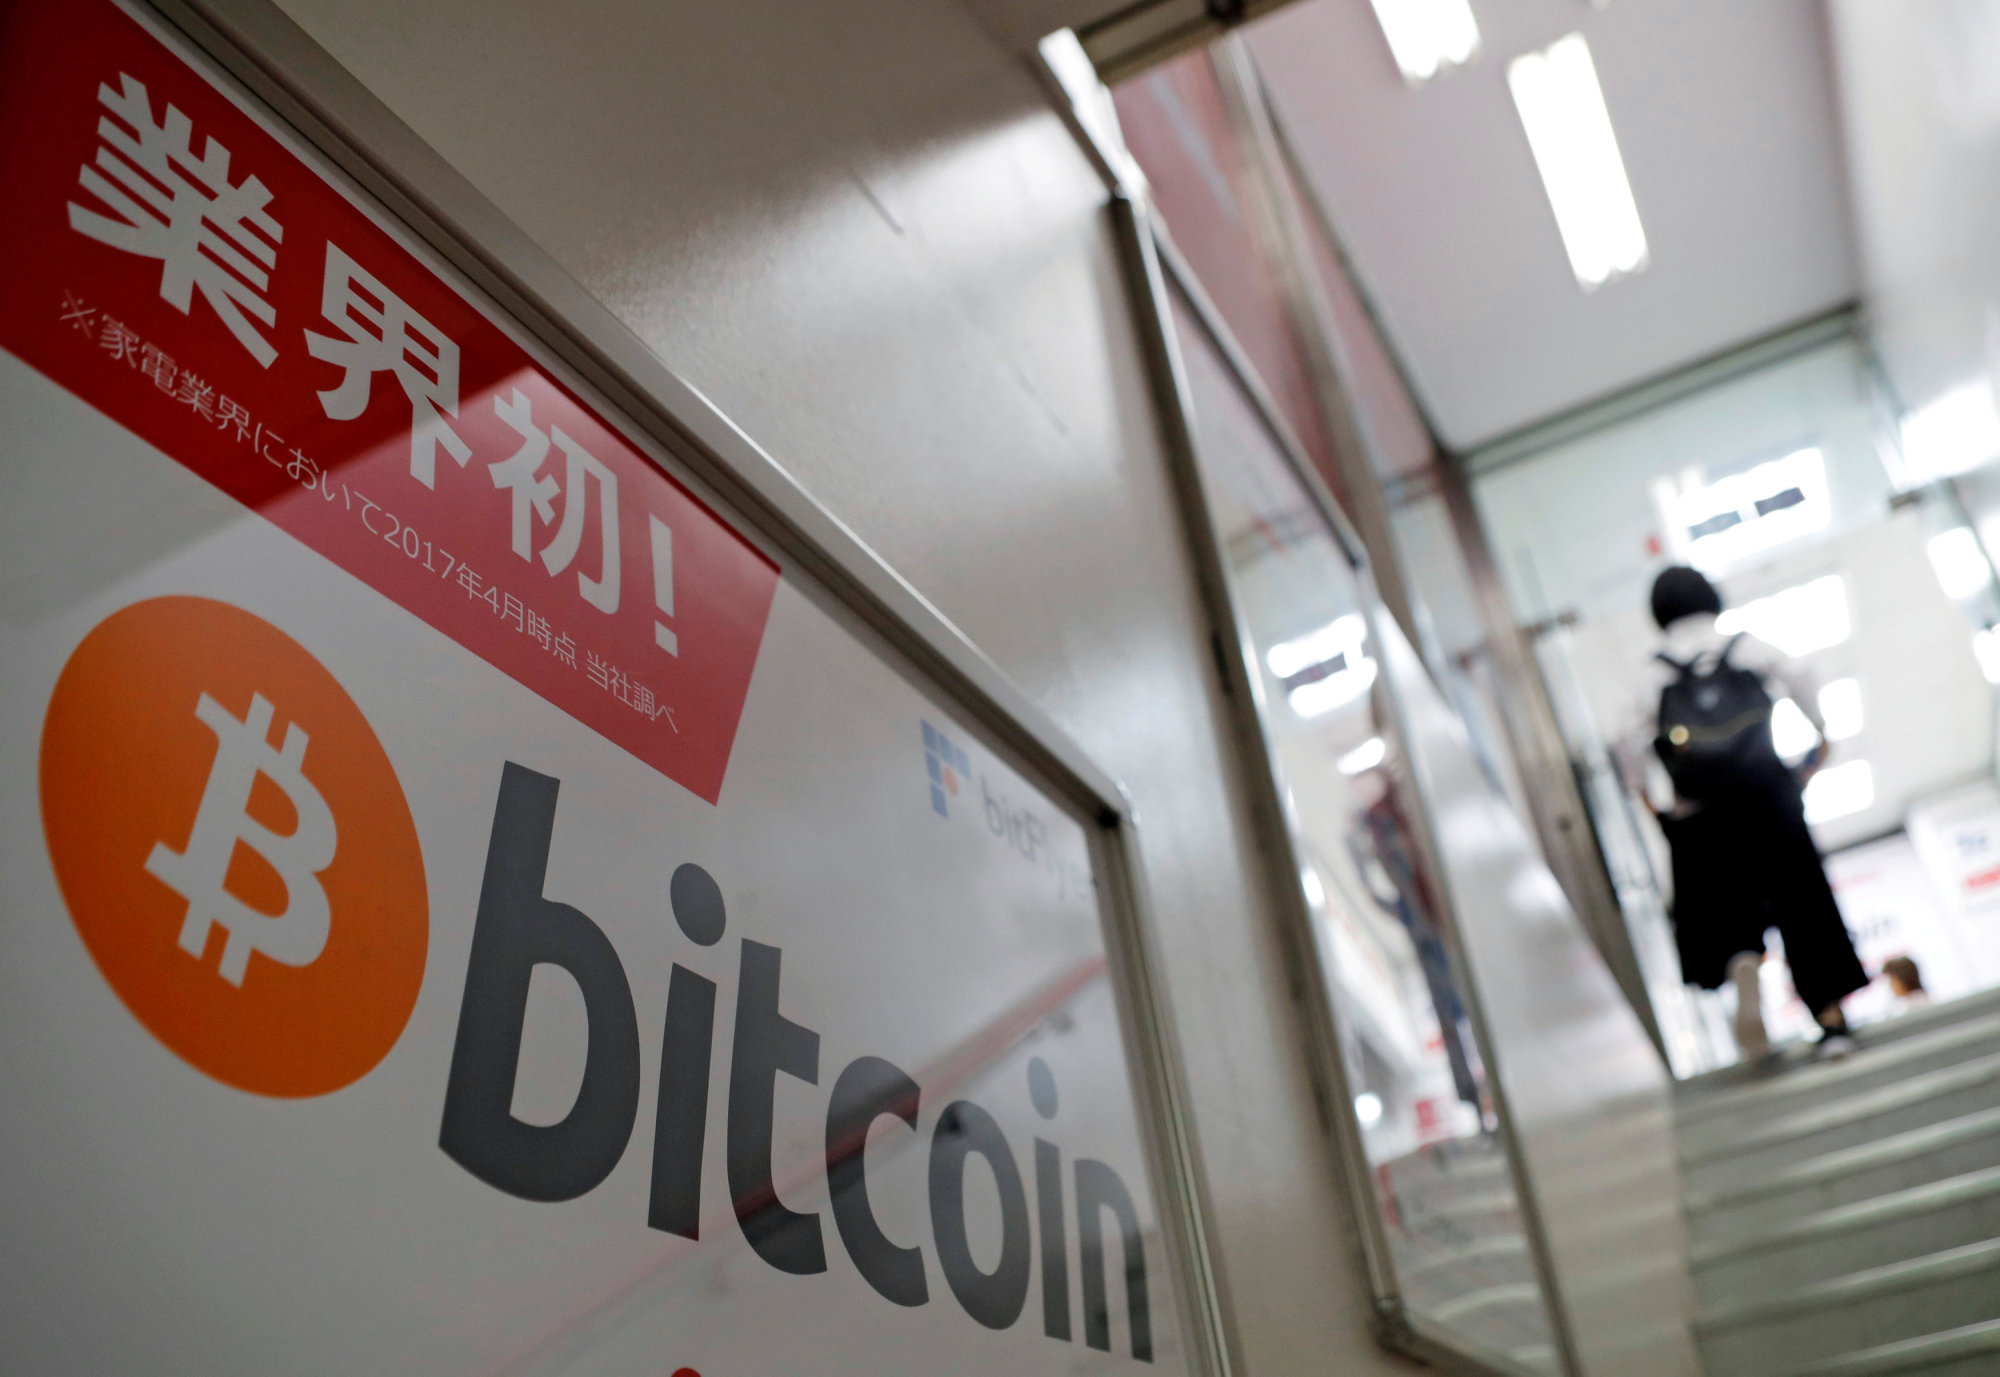 A bitcoin logo is seen on an advertisement of an electronic shop in Tokyo last September. | REUTERS